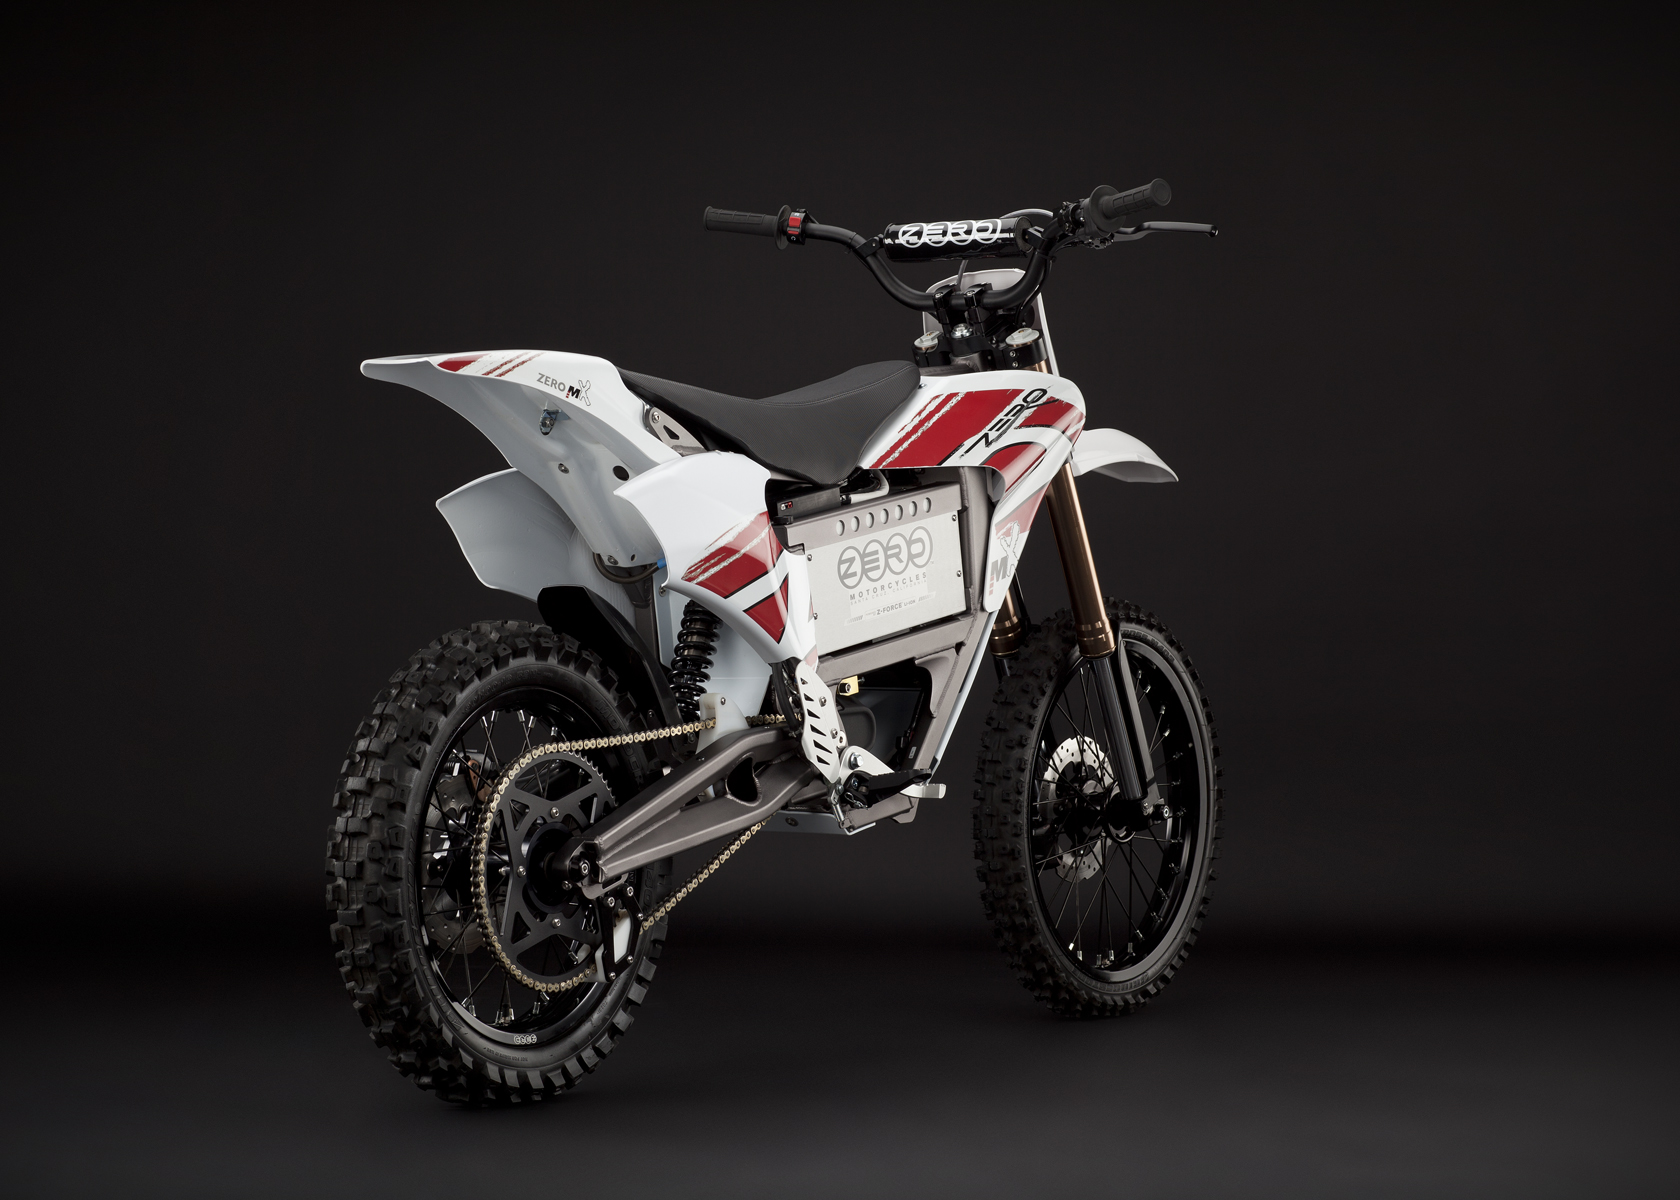 2011 Zero MX Electric Motorcycle: Angle Right, Rear View, Dirt Model